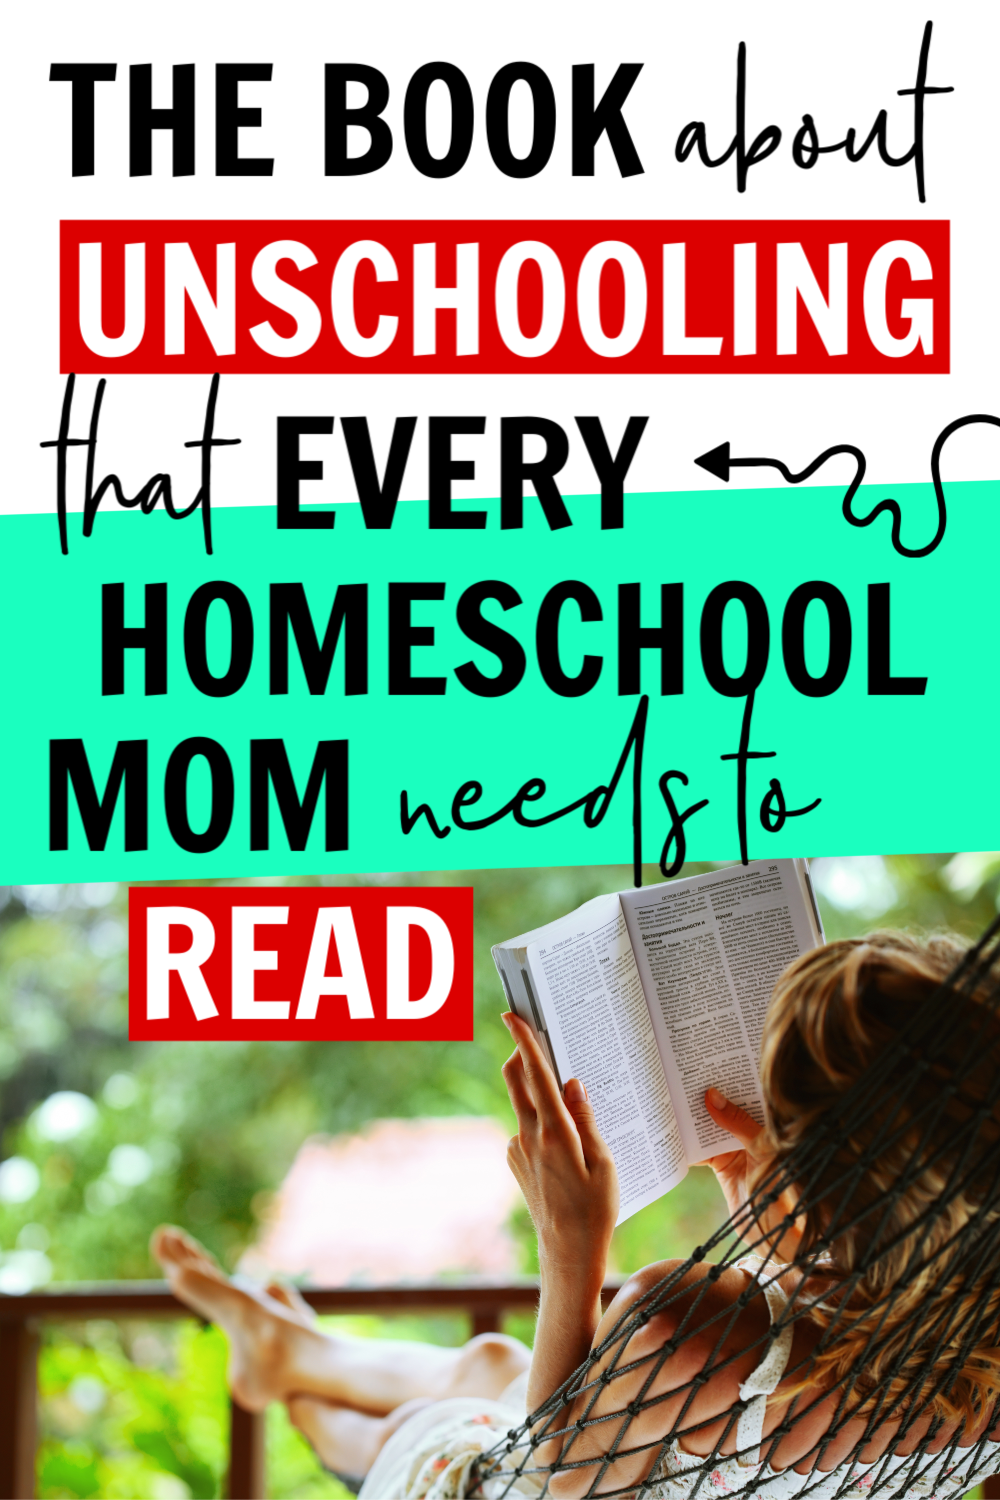 This unschooling book is one every homeschool mom should read, no matter her style. Here's why.